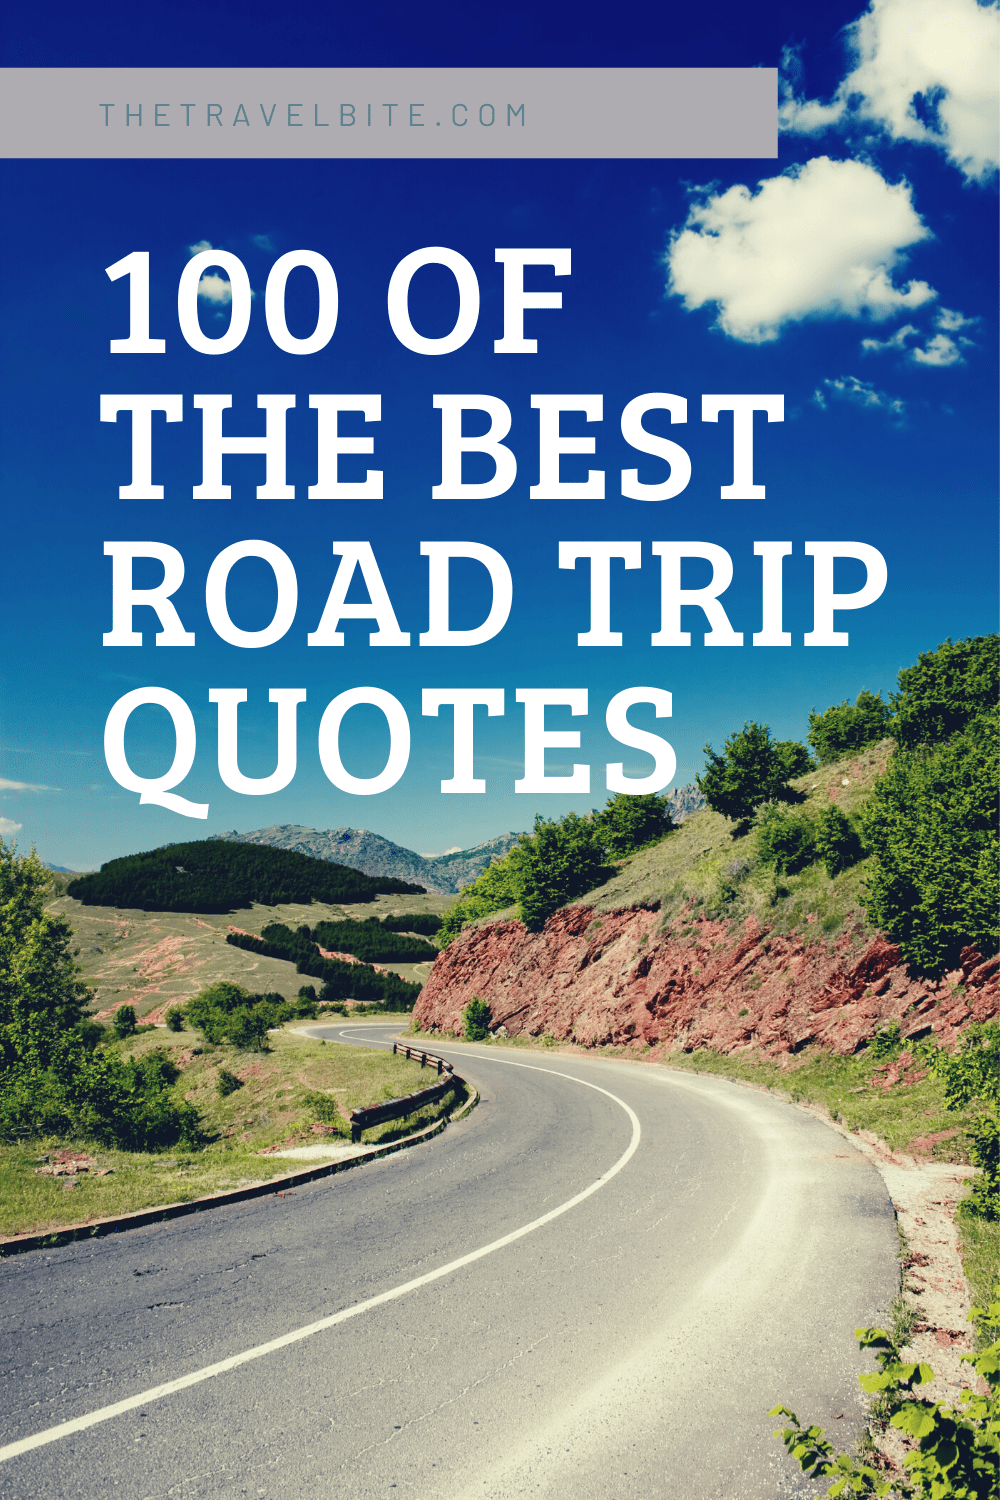 Road Trip Quotes Pin - Open road and blue skies - TheTravelBite.com